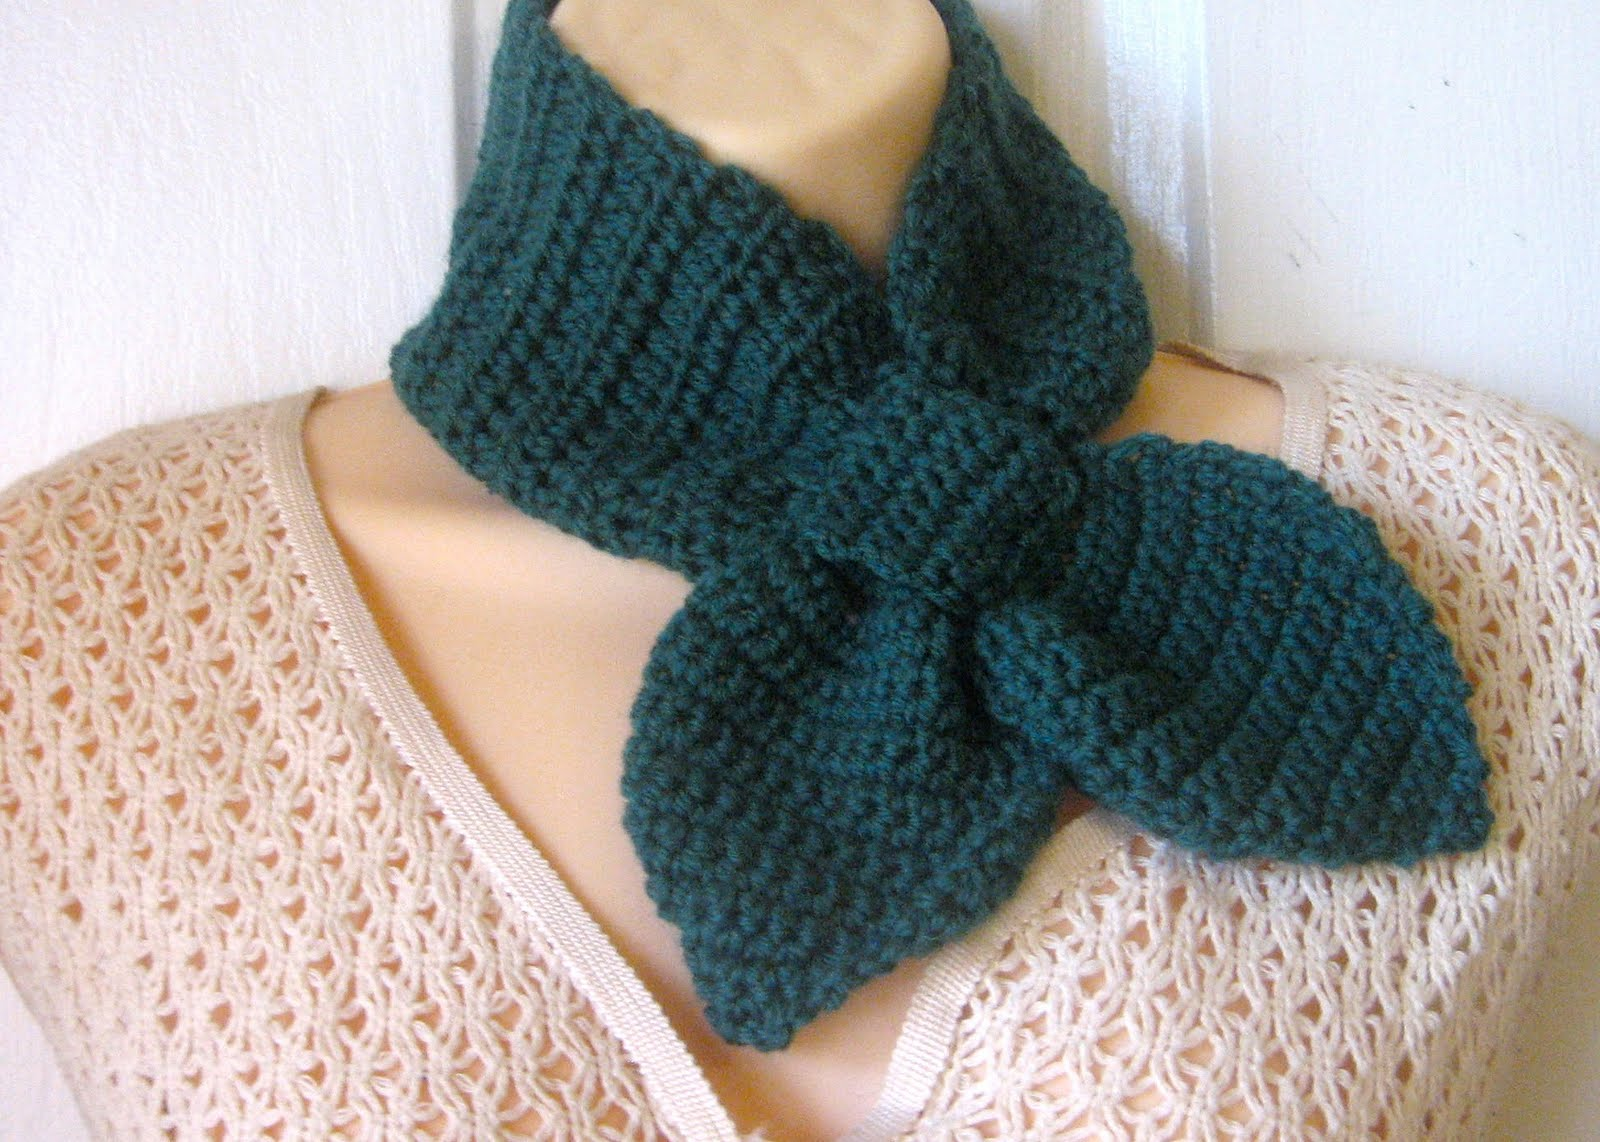 Crochet Patterns Neck Scarves : Neck Scarf Crochet Pattern http://crochetascarf.com/crochet-pattern ...